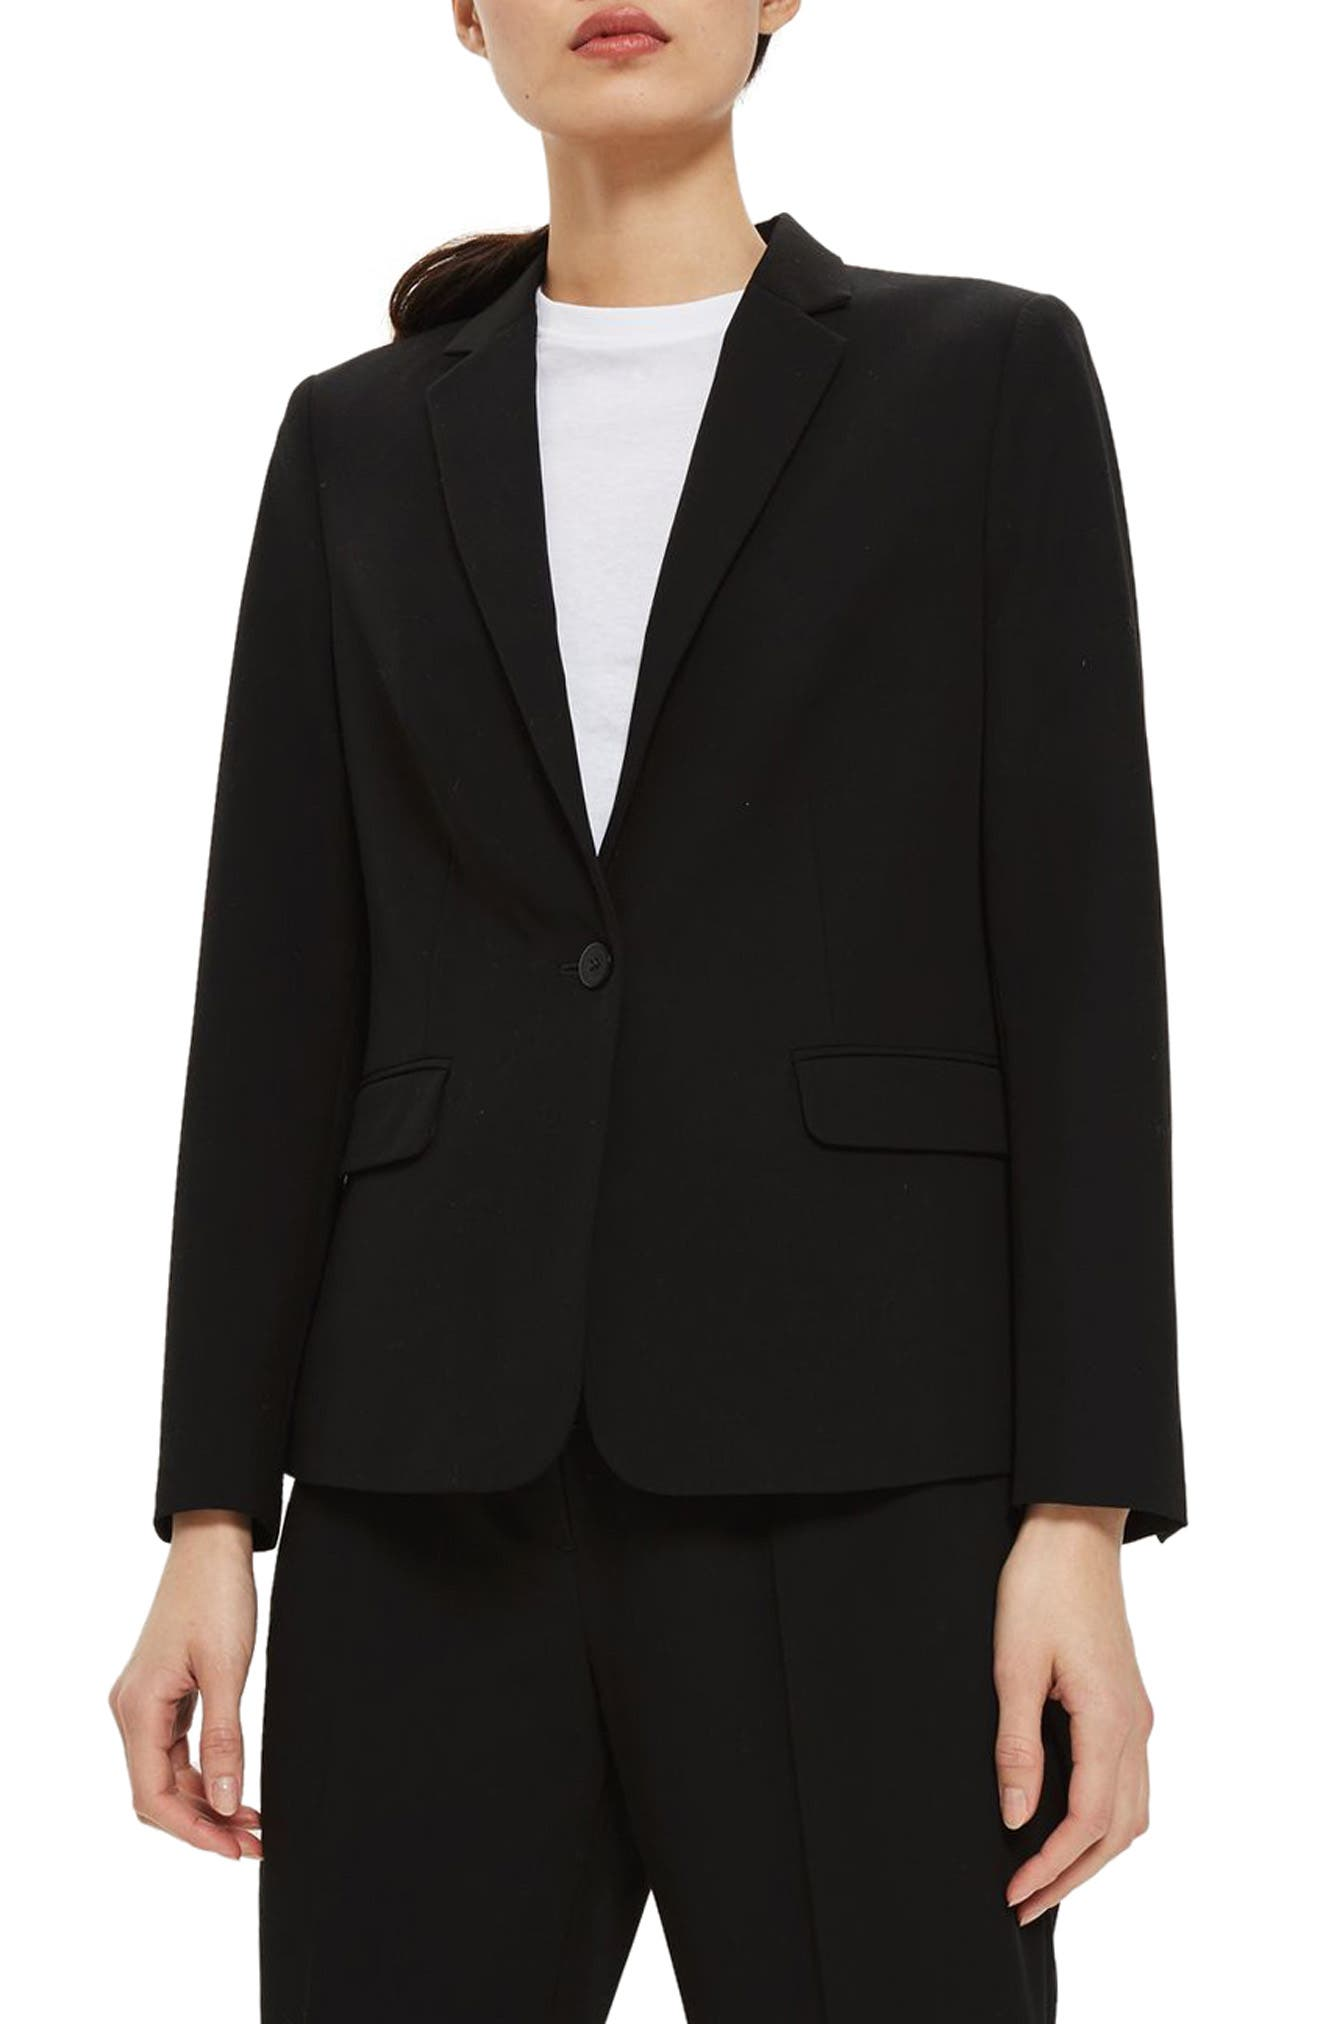 Single Breasted Suit Jacket,                             Main thumbnail 1, color,                             001